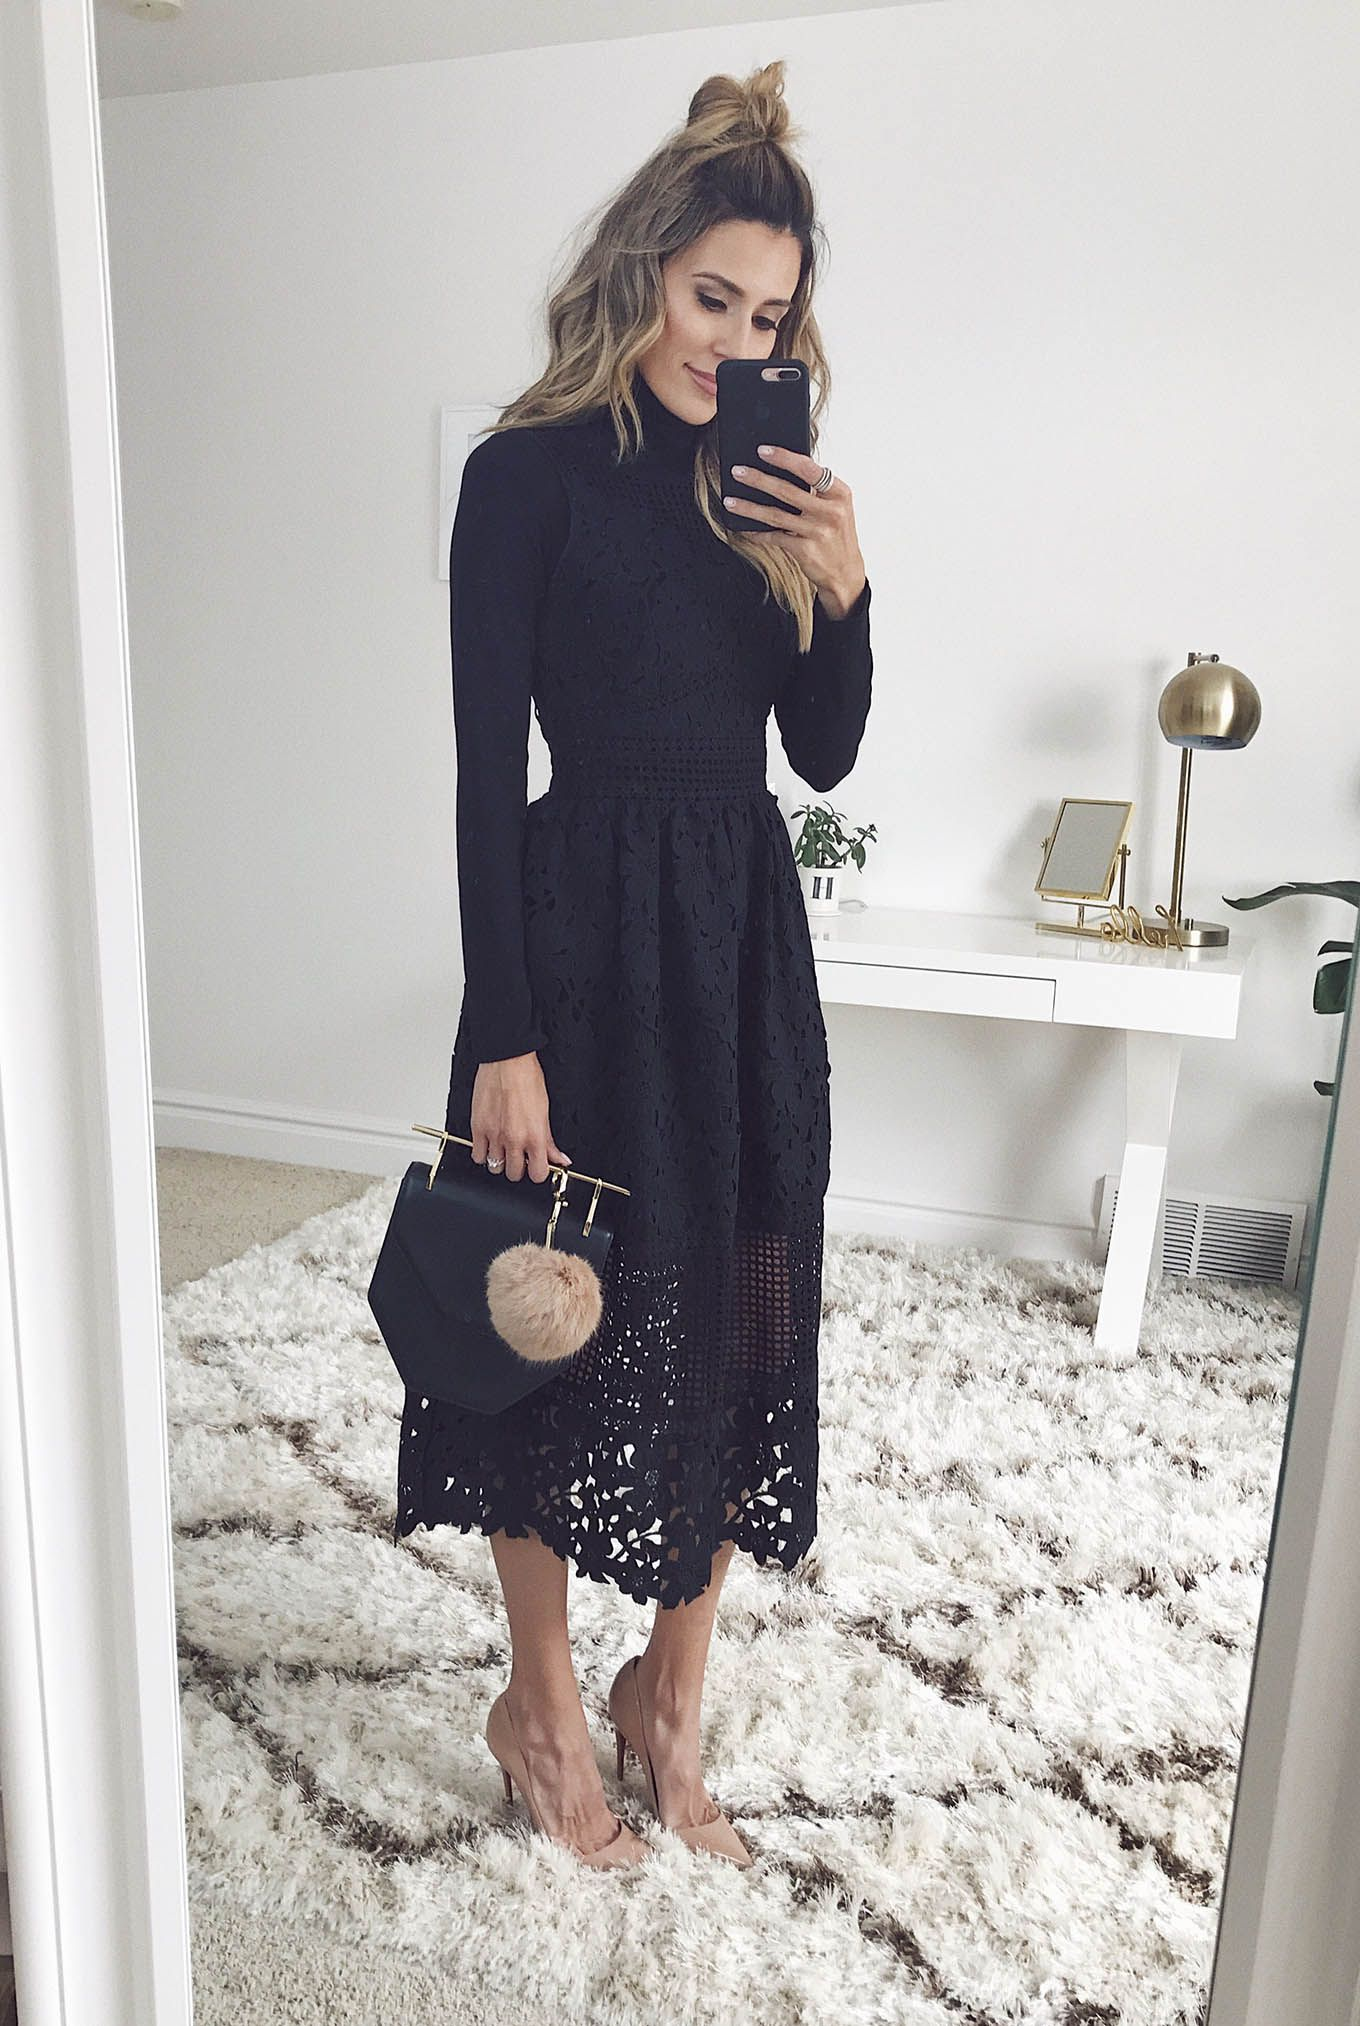 Fashion style How to midi wear skirts pinterest for girls